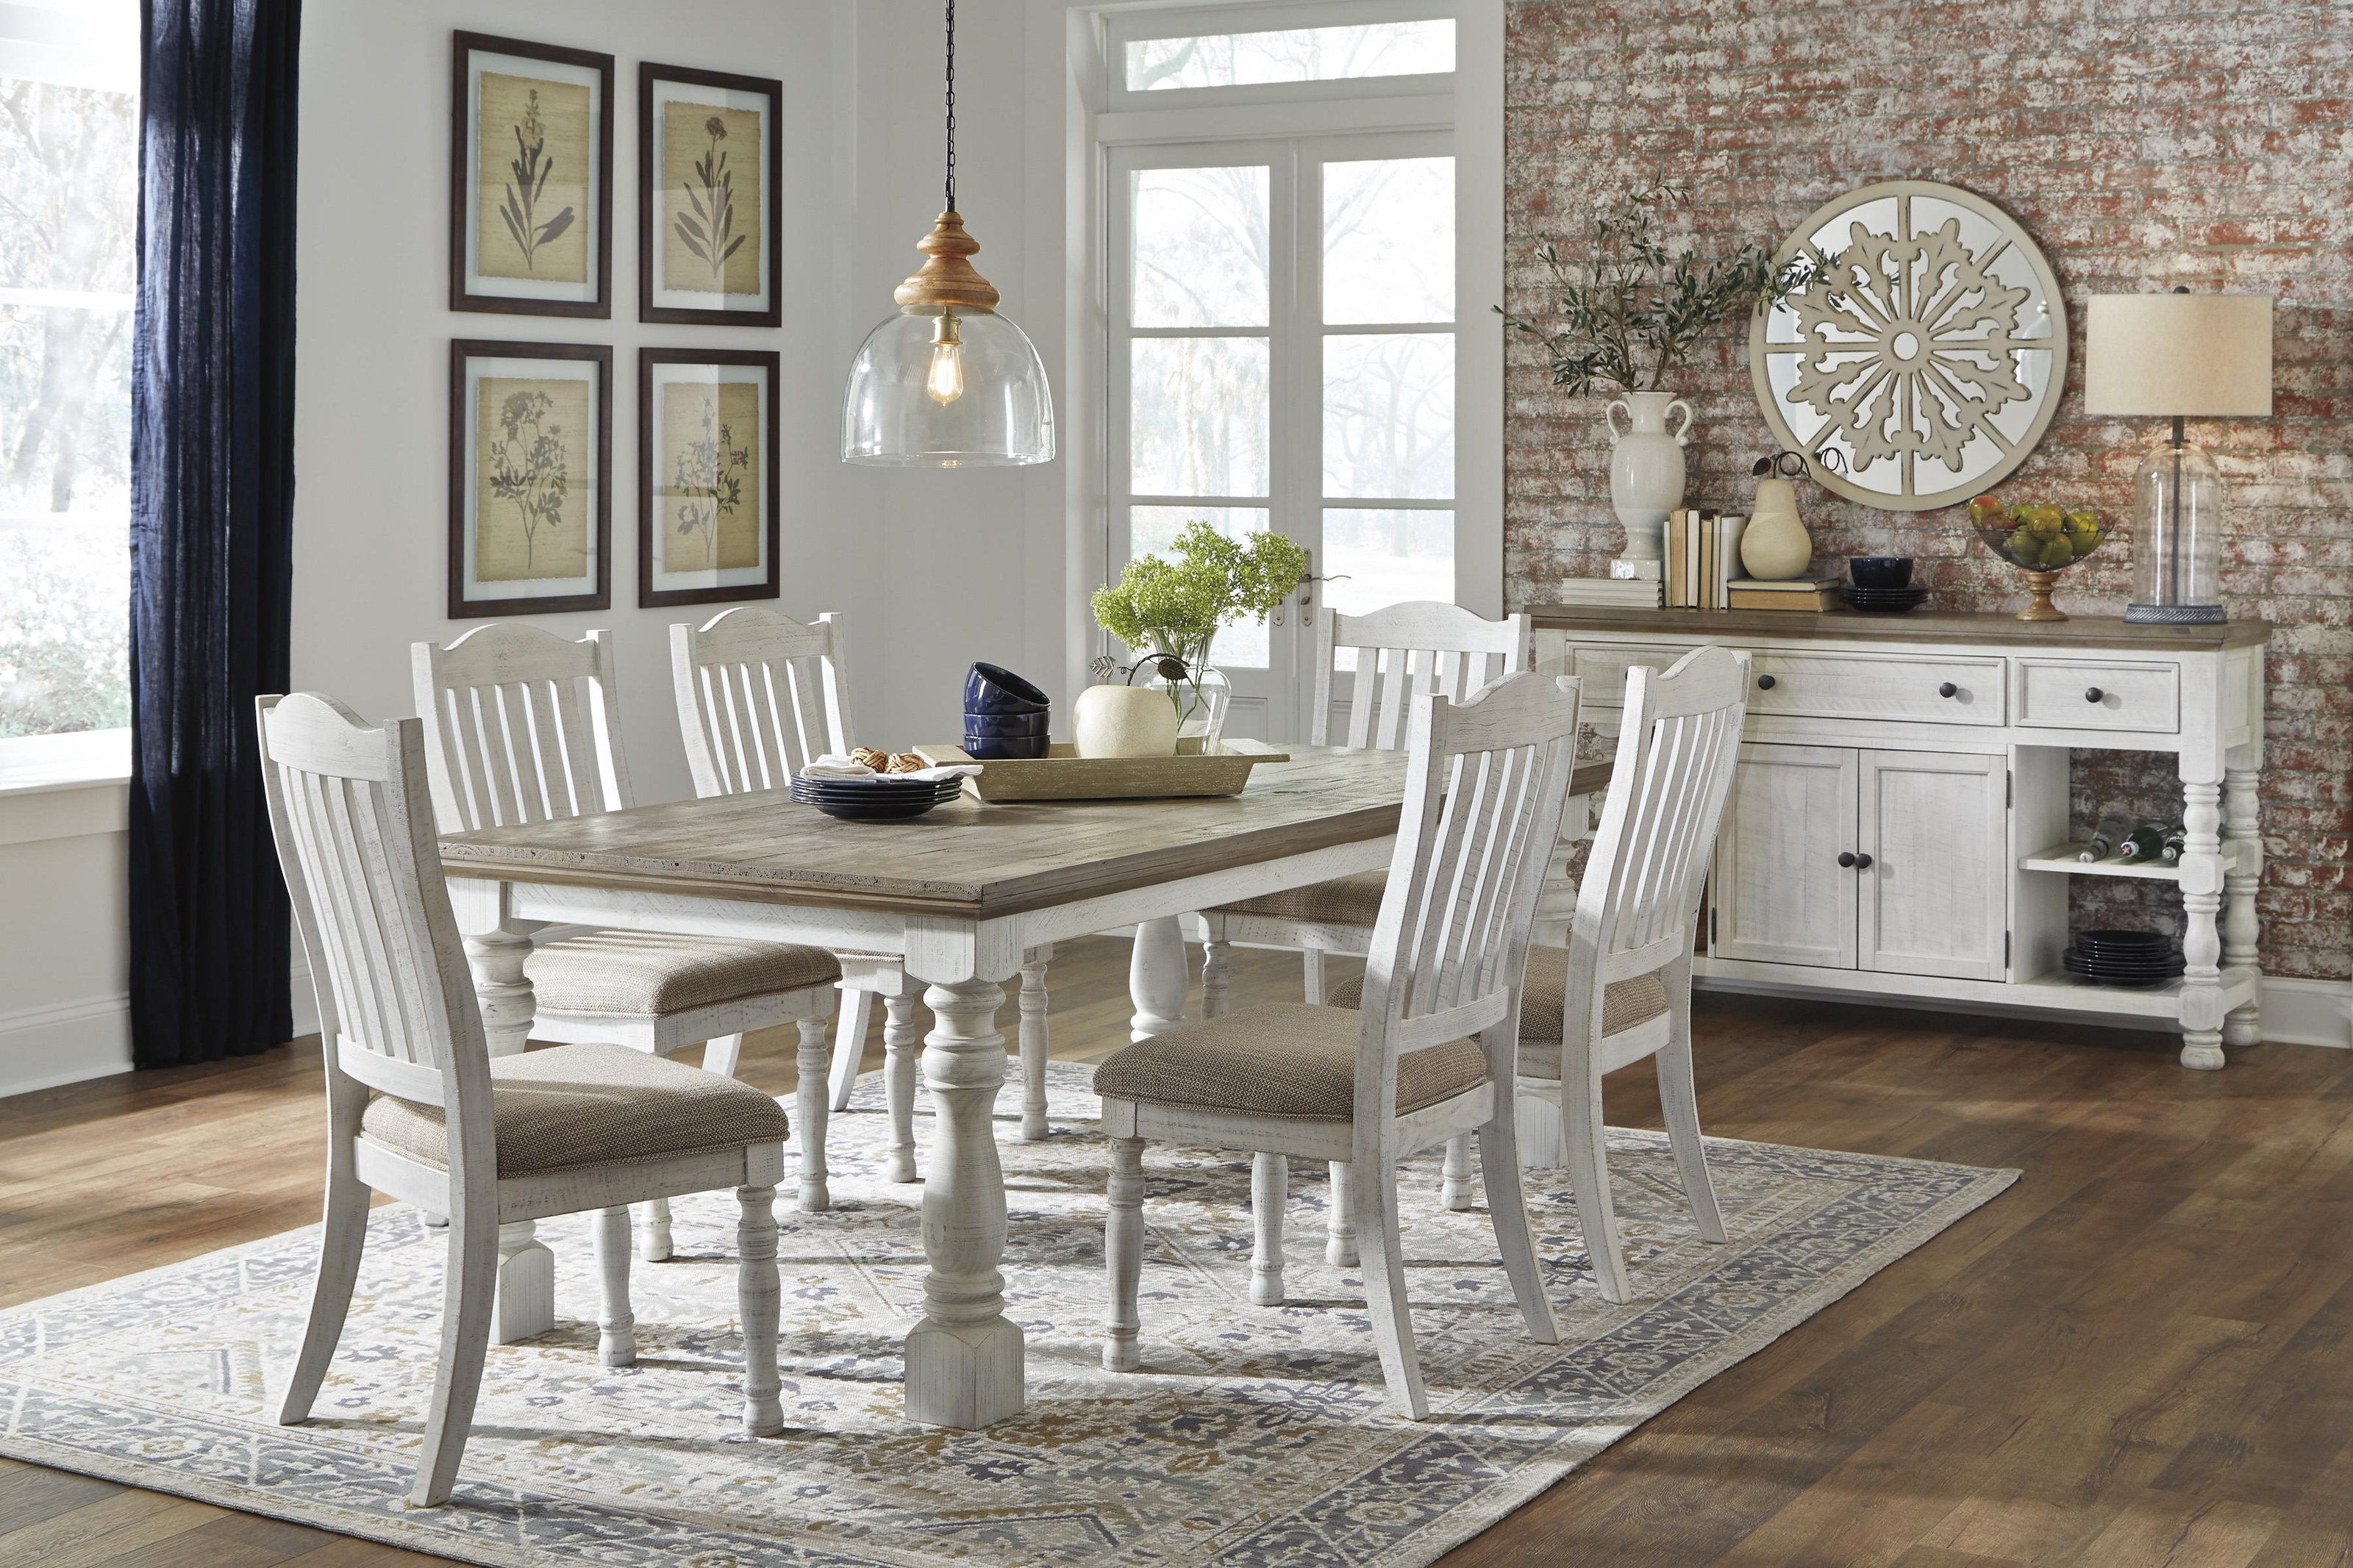 Havalance Havalance 5-Piece Dining Set by Ashley at Morris Home